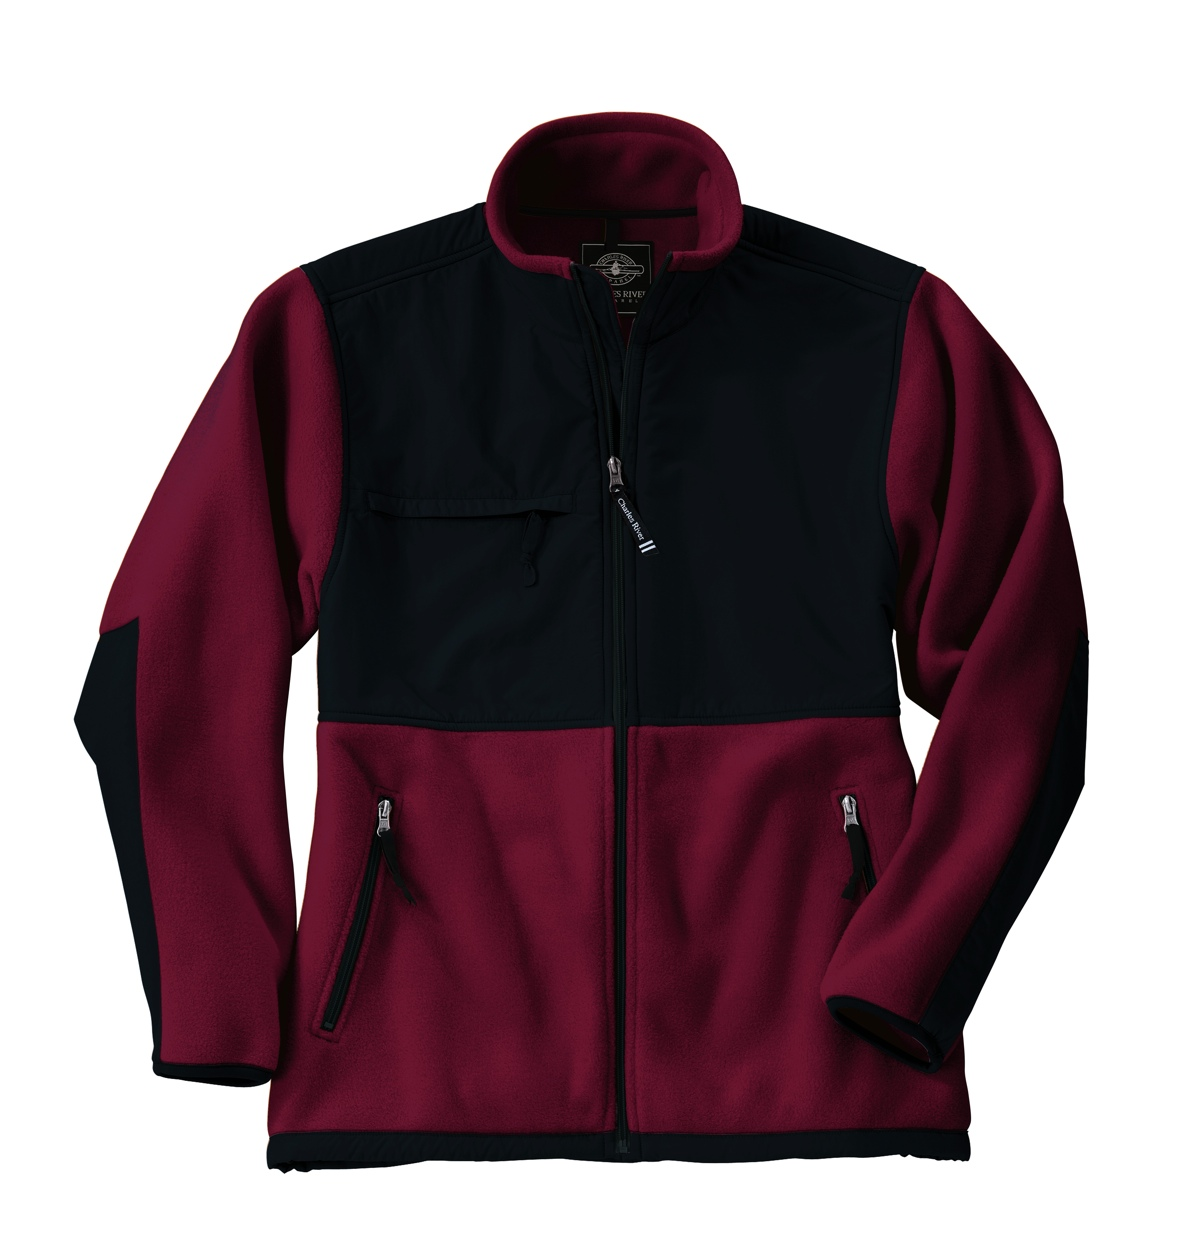 8931C Charles River Youth Evolux Fleece Jacket